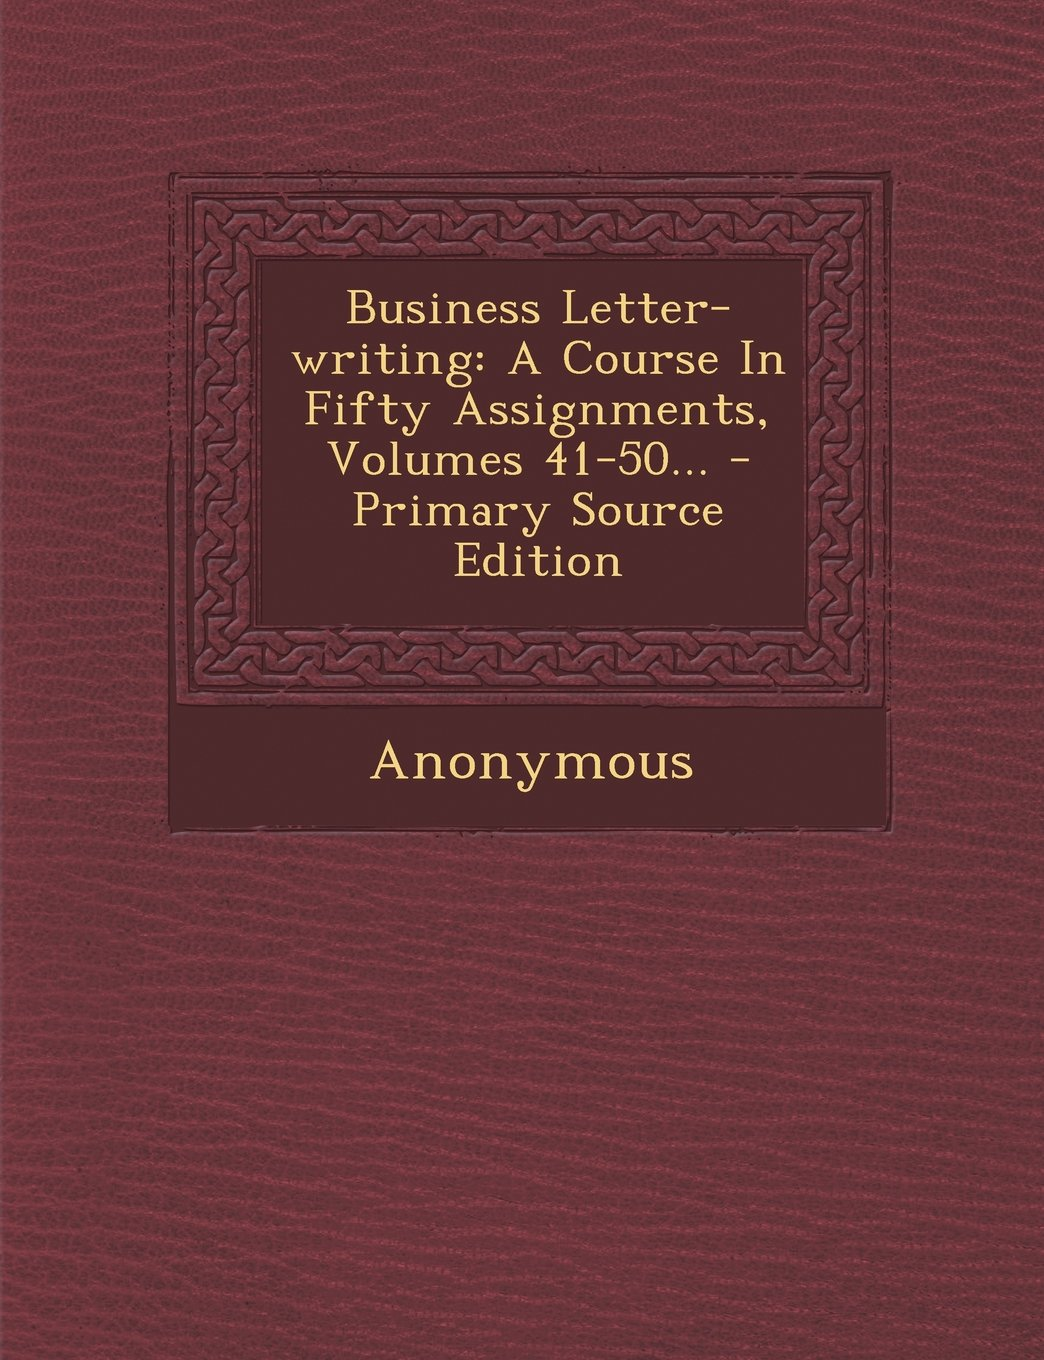 Download Business Letter-writing: A Course In Fifty Assignments, Volumes 41-50... - Primary Source Edition ebook